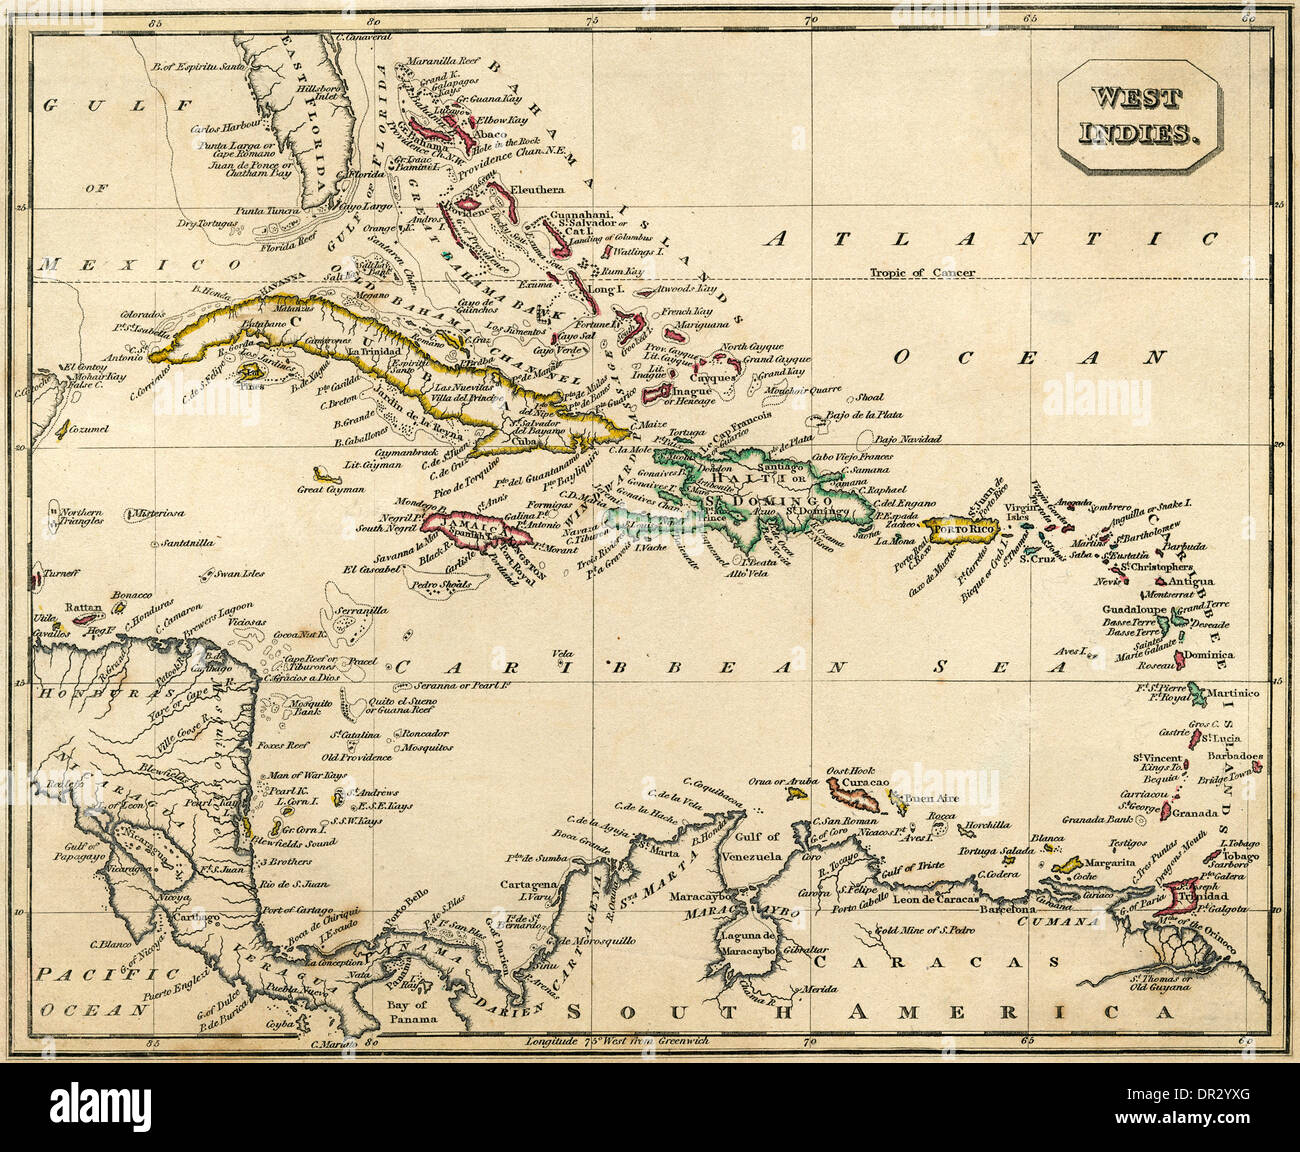 Map Of British West Indies Stock Photos & Map Of British West Indies ...